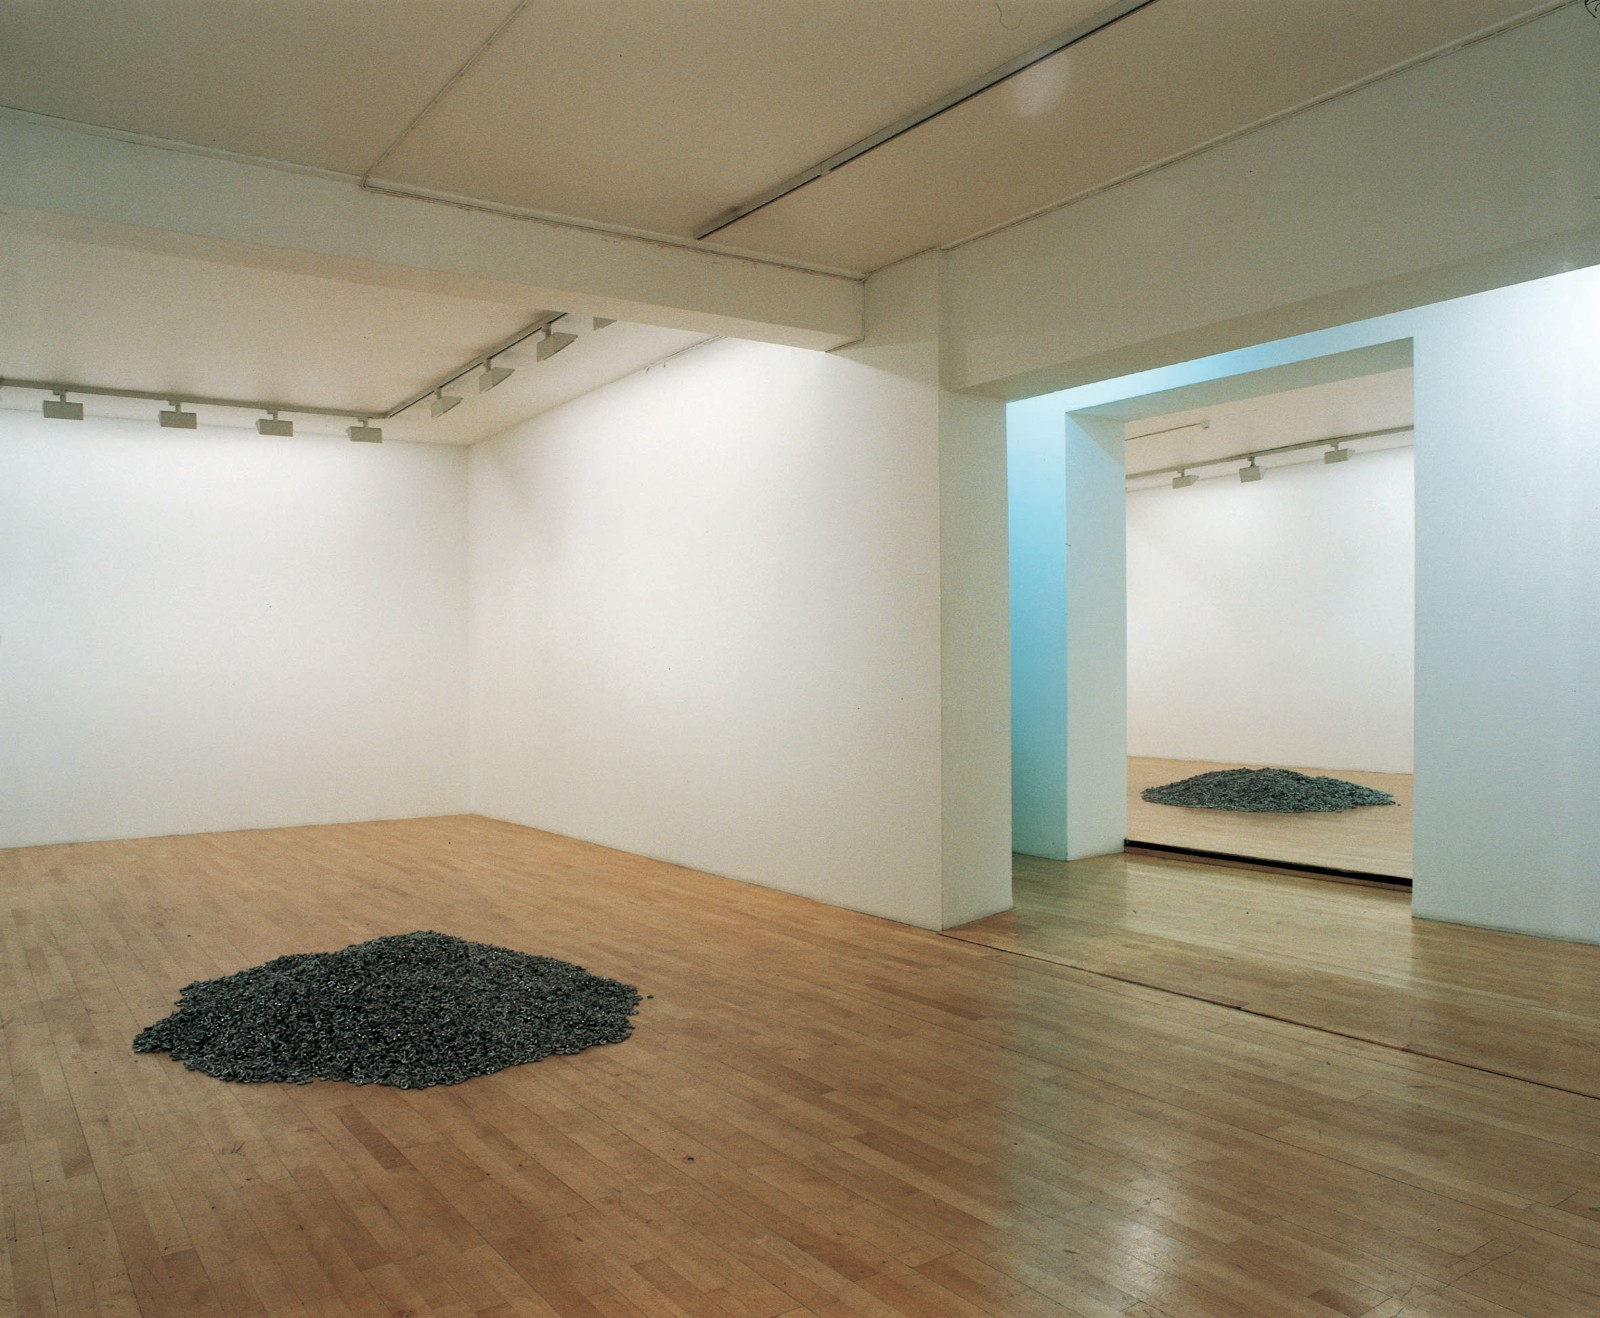 Dan & Wolgers, 1993, Chain, size variable, installation view Galleri Riis, 1993